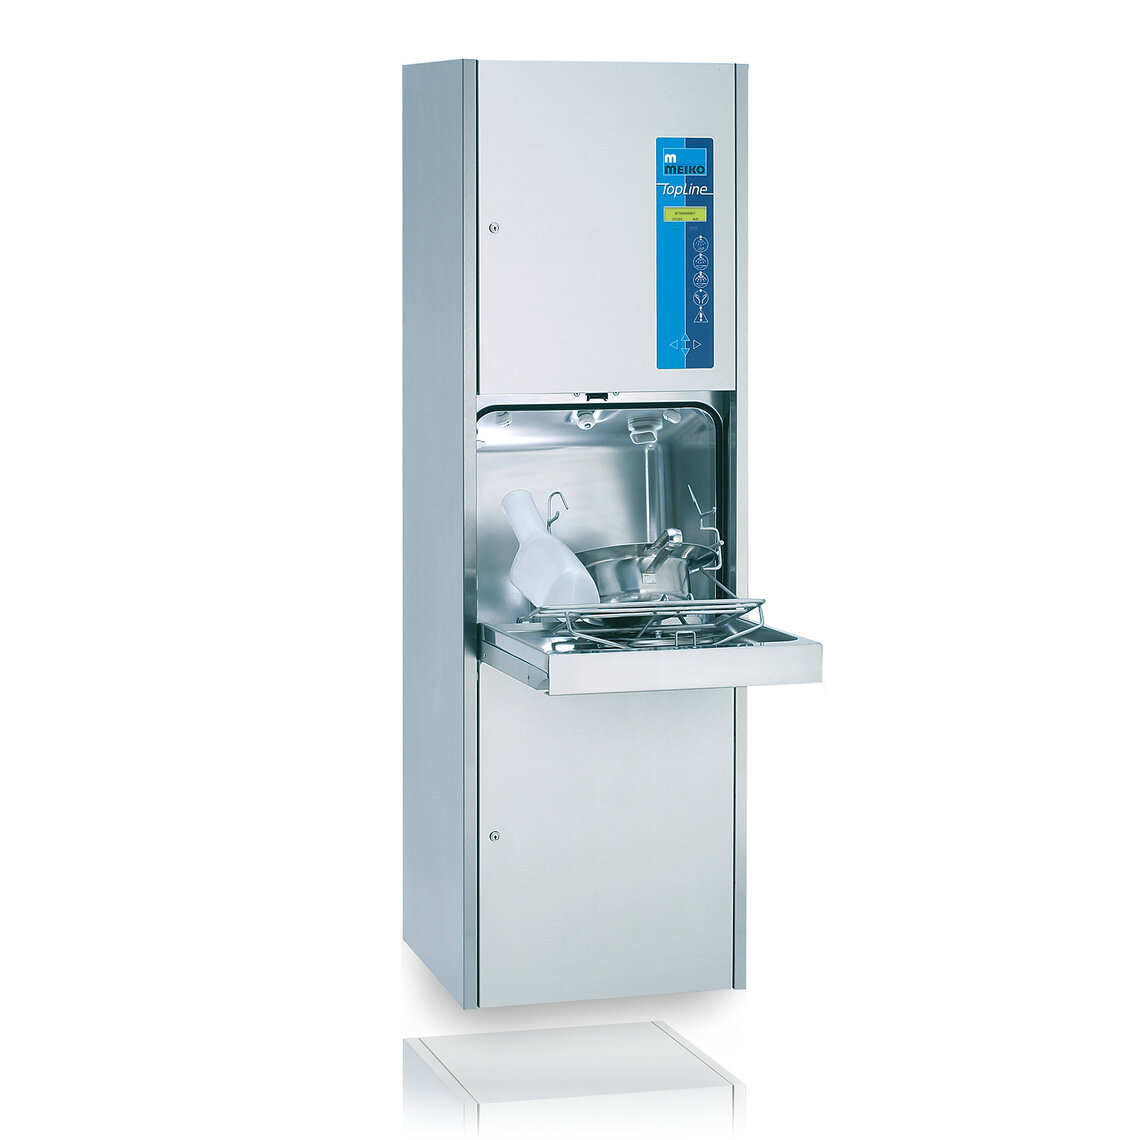 Bedpan Washer For Hospitals And Care Homes Meiko